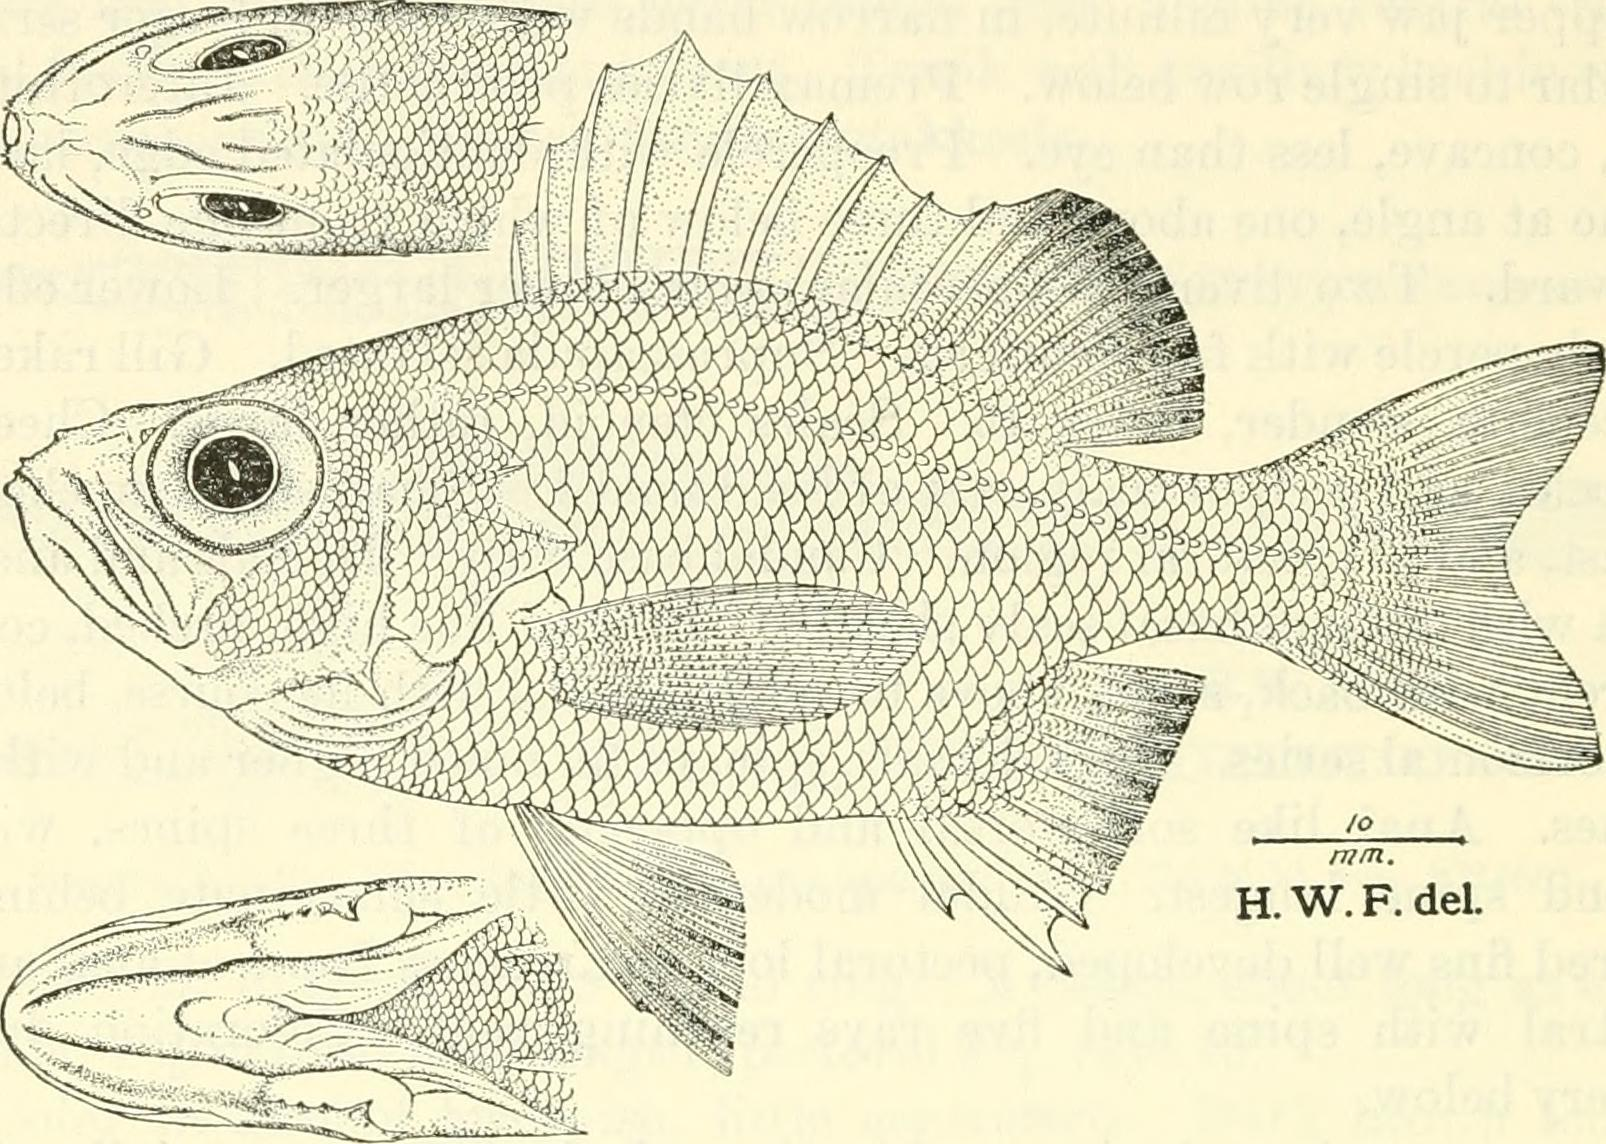 Image of Blackthroat seaperch